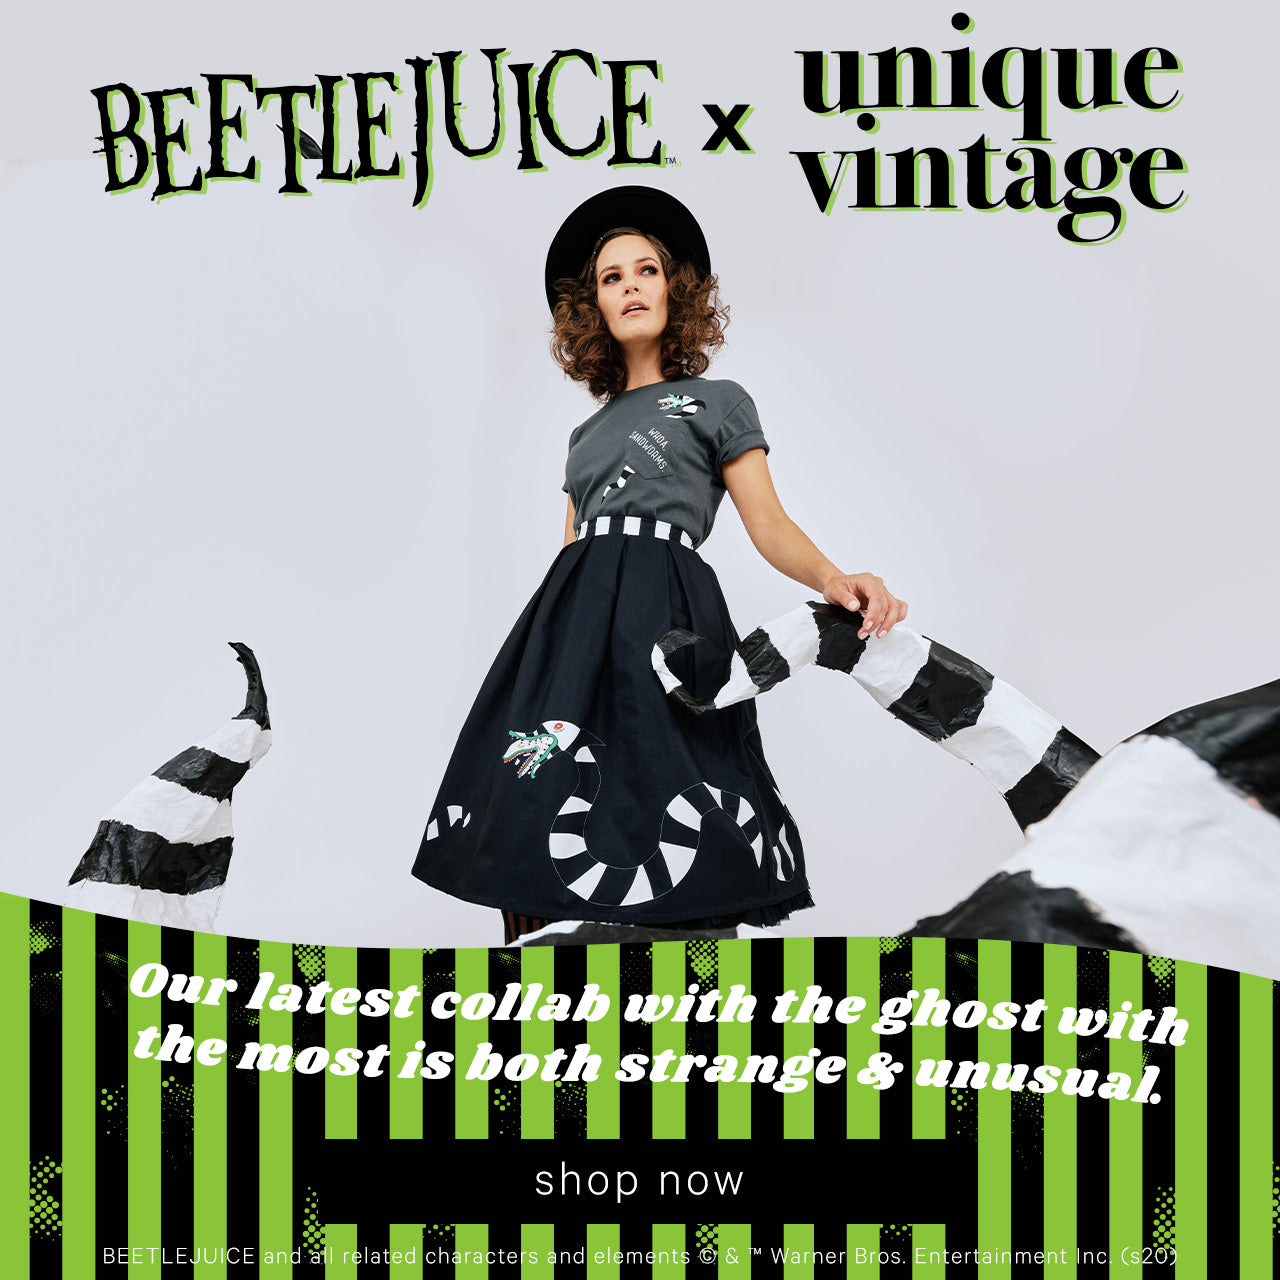 Unique Vintage — Shop Beetlejuice x Unique Vintage